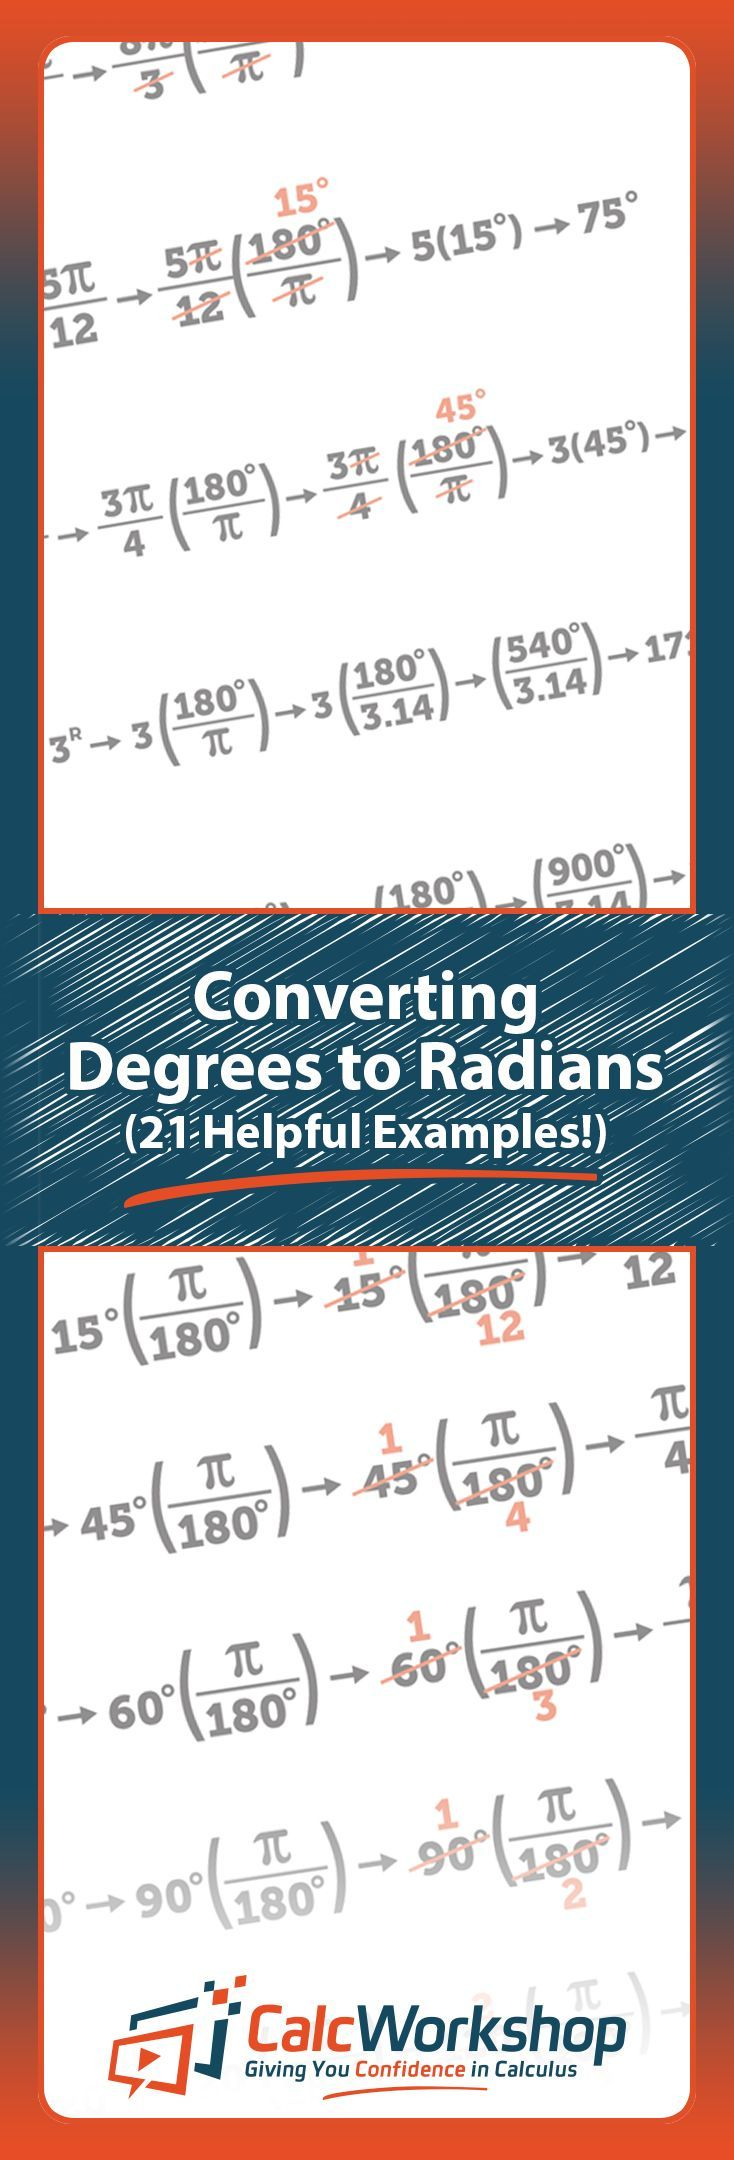 Converting Degrees to Radians with 21 Helpful Examples.  Great practice for students and teachers in Precalculus, Algebra, Trig, or Math Analysis.  Check it out today!